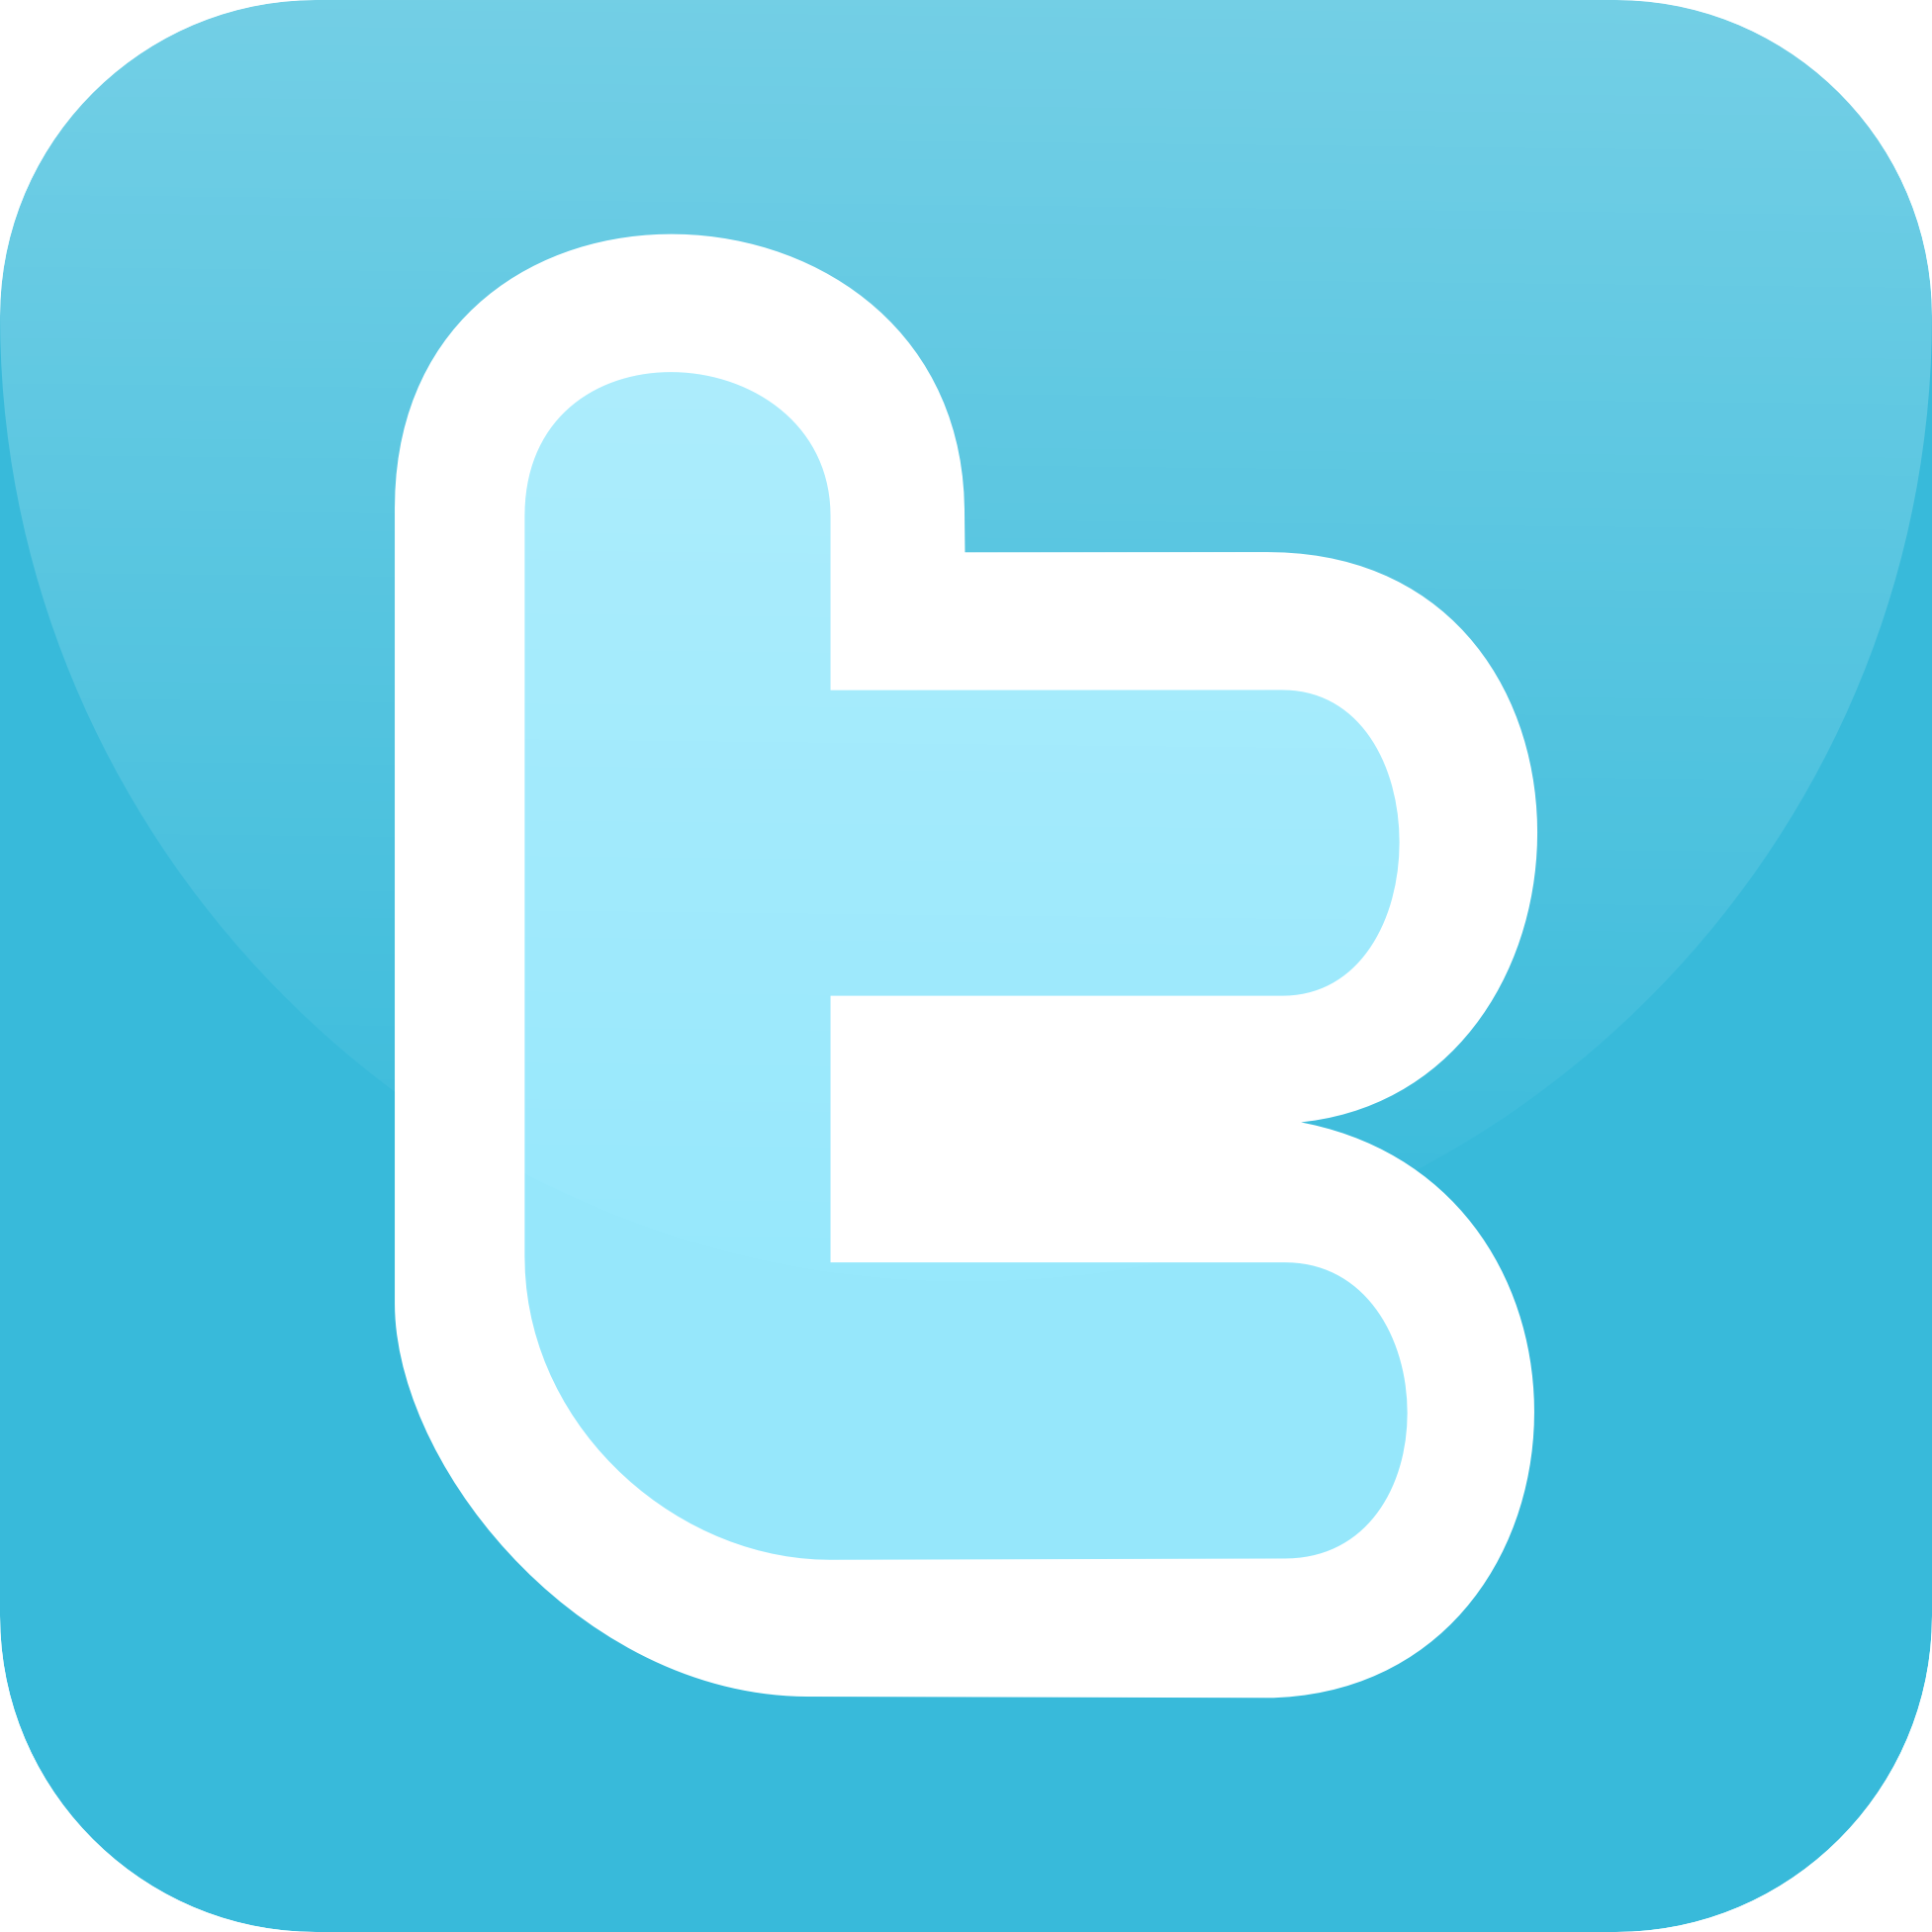 Twitter PNG Free Download